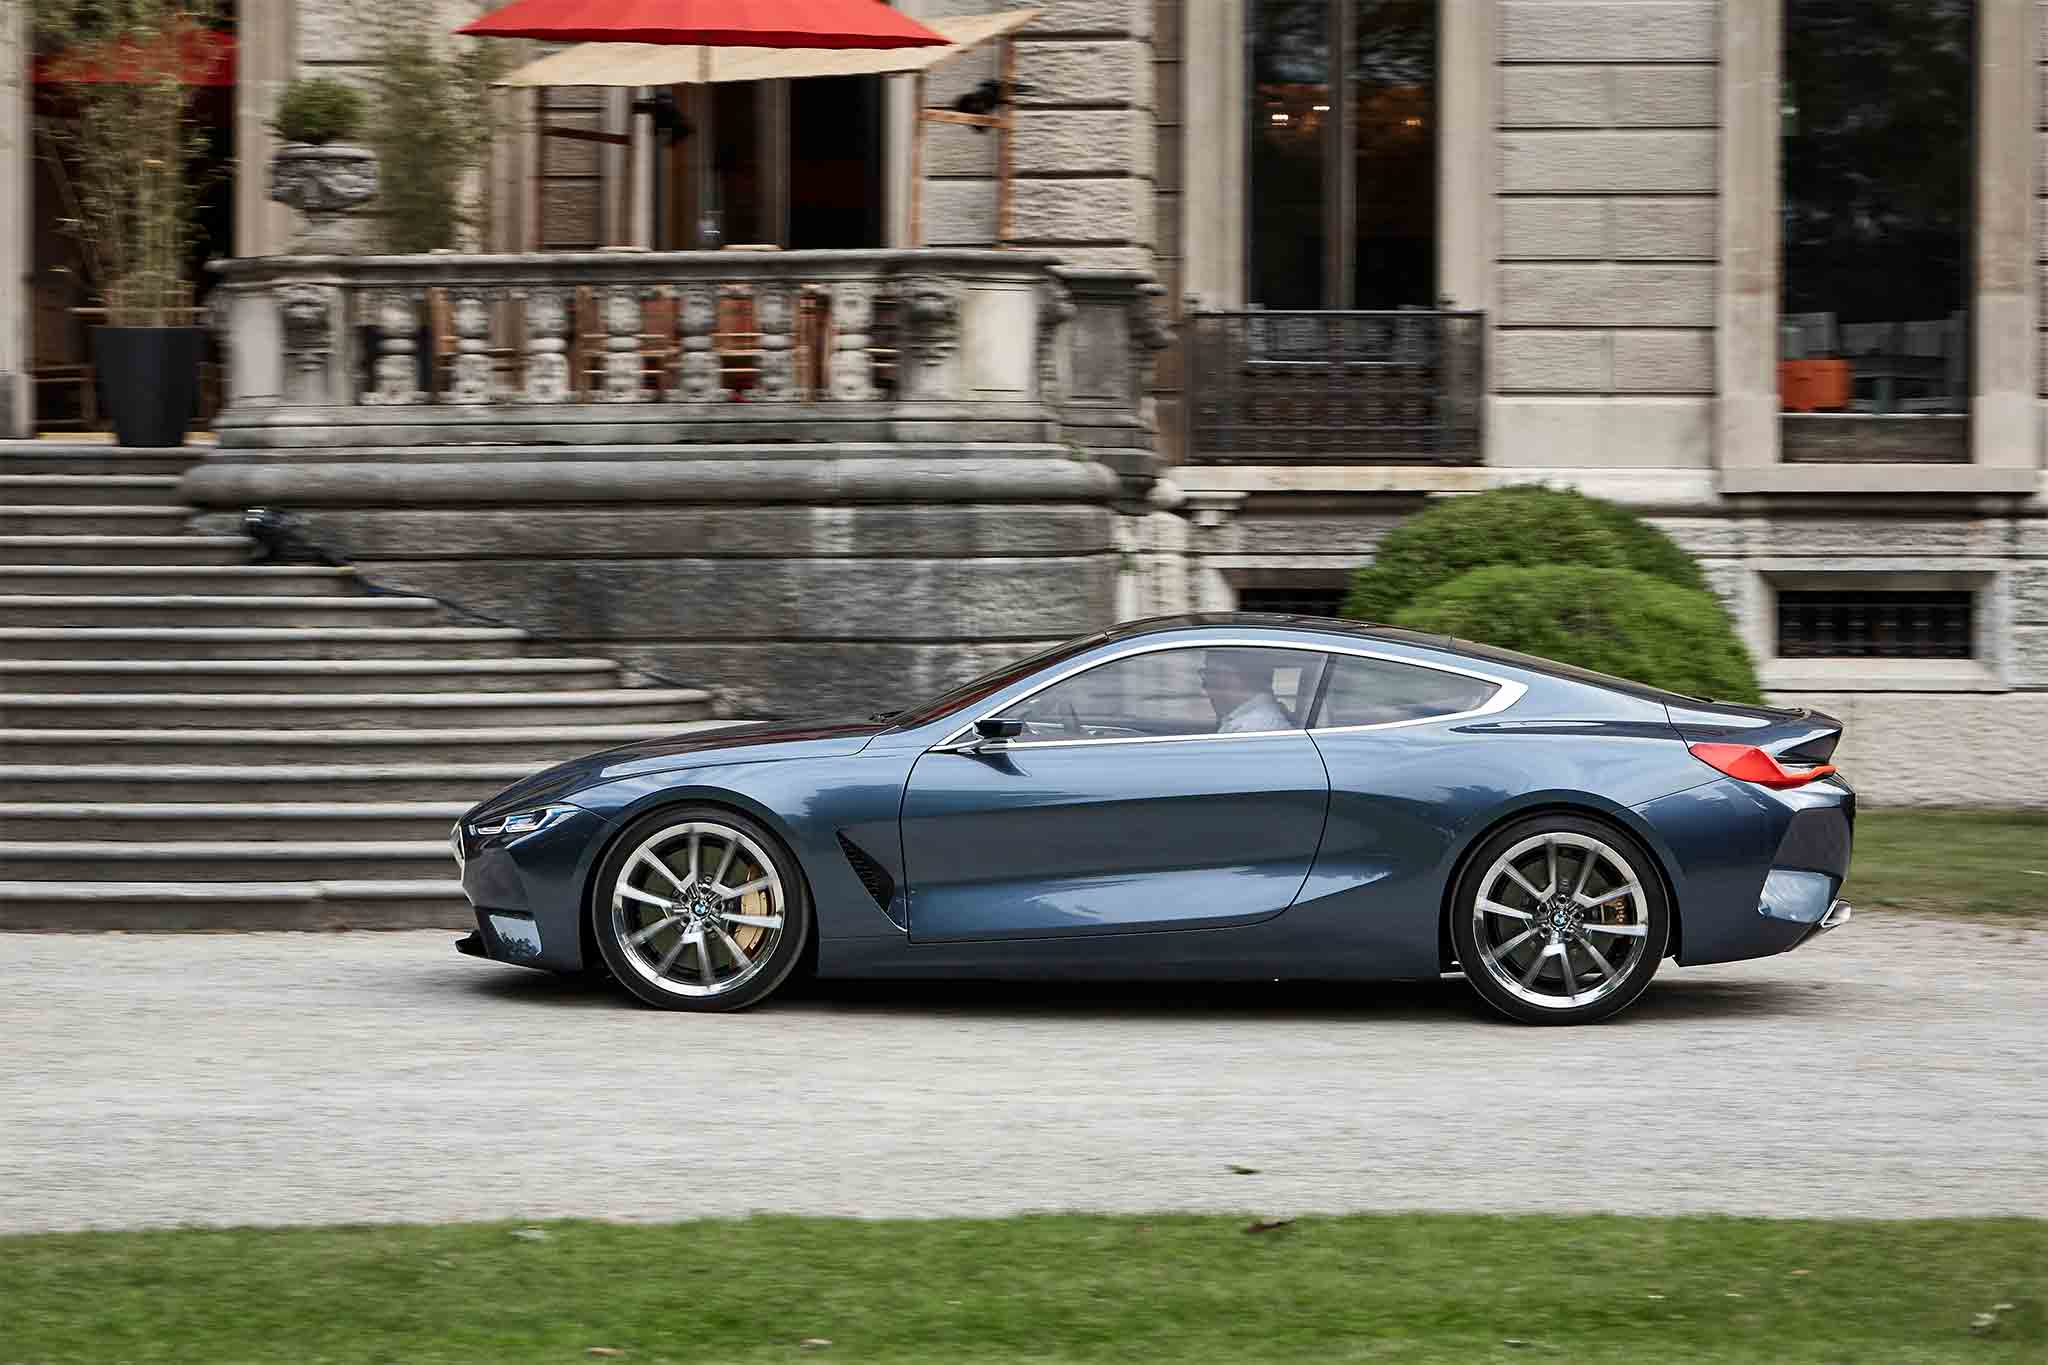 2017 Bmw 6 Series >> Exclusive: BMW 8 Series Concept Quick Drive | Automobile Magazine